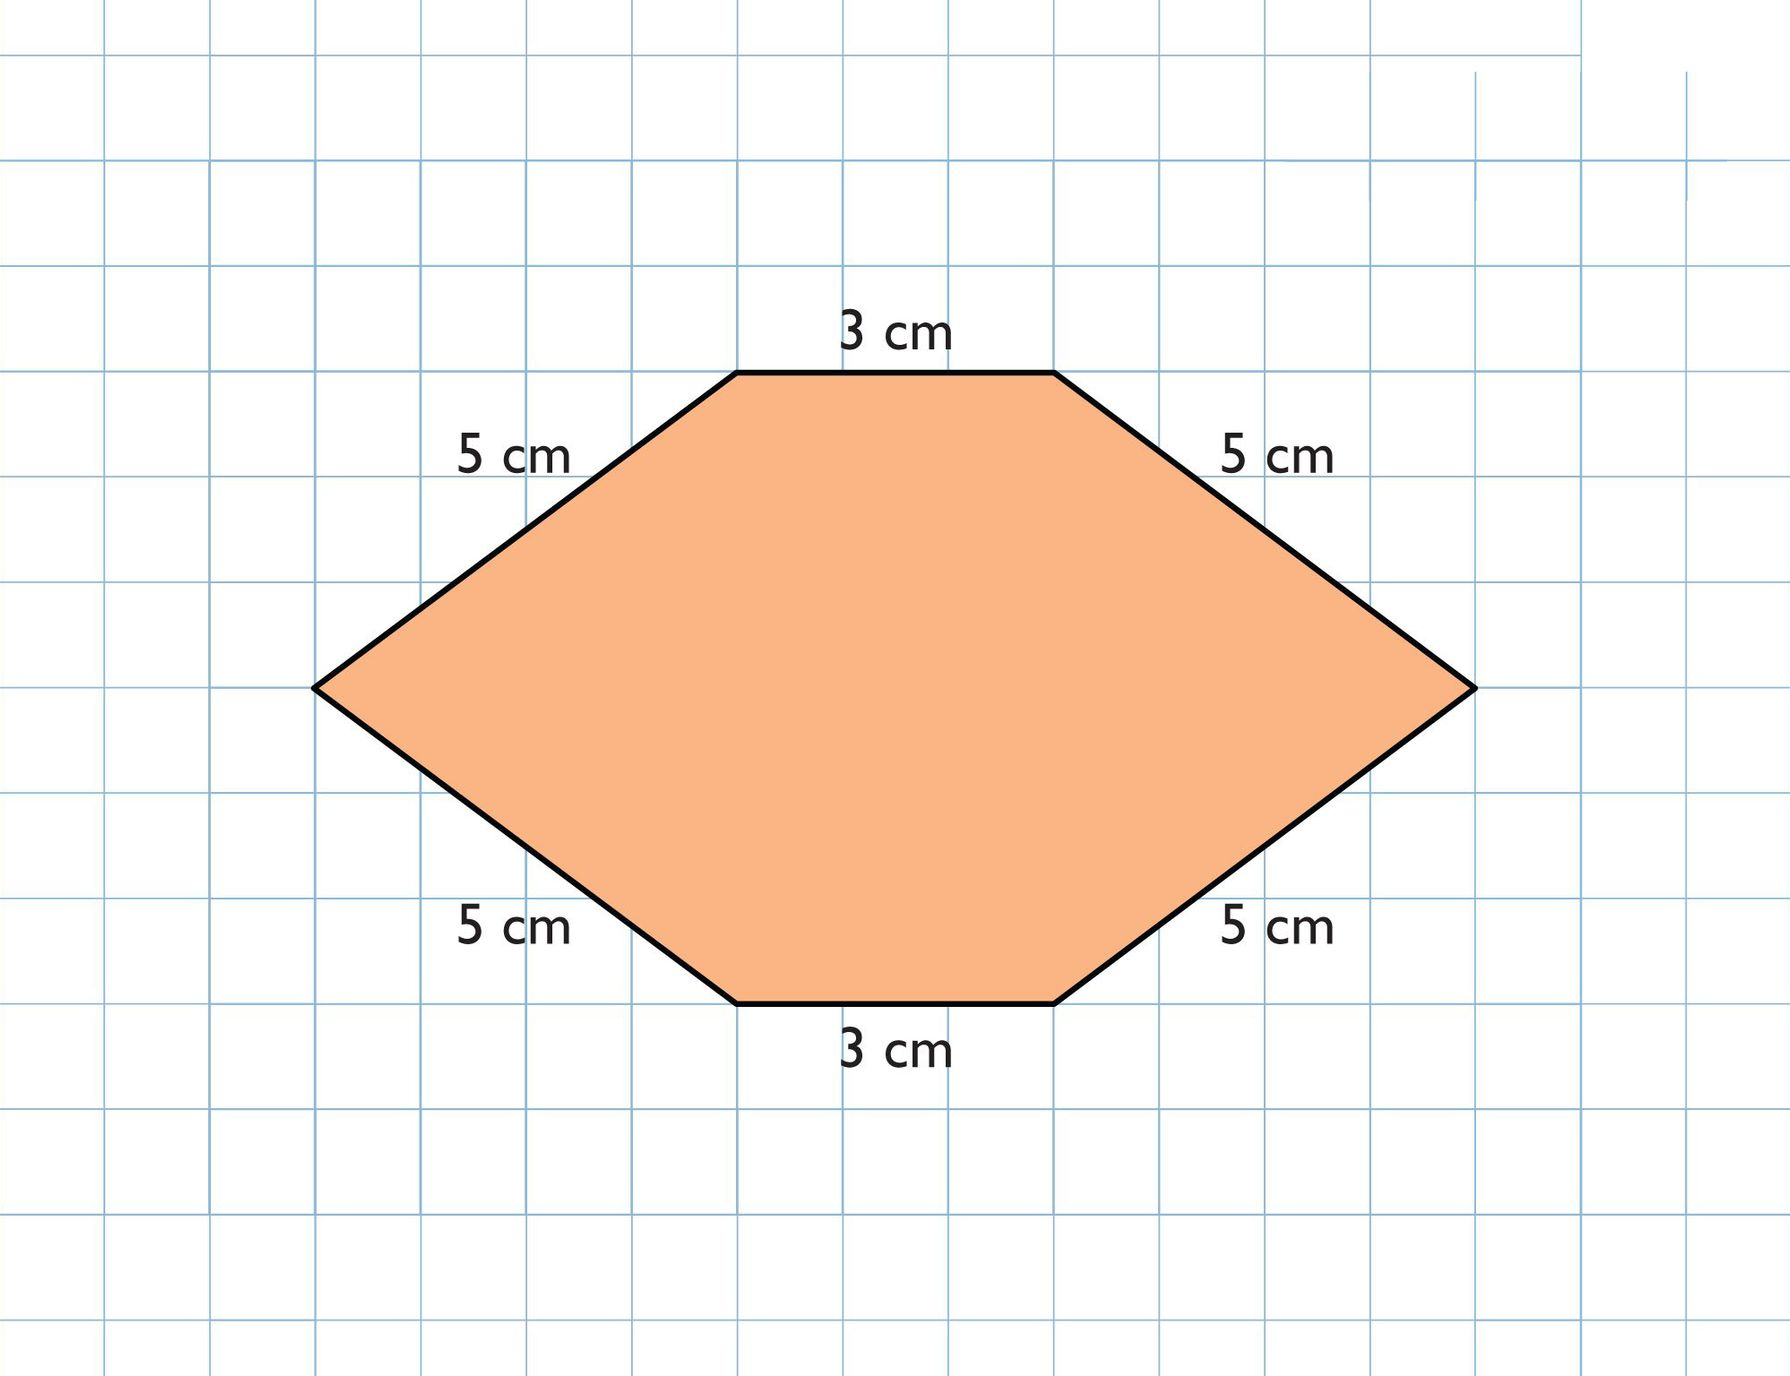 The Hexagonal Prism Has A Height Of 5 Cm